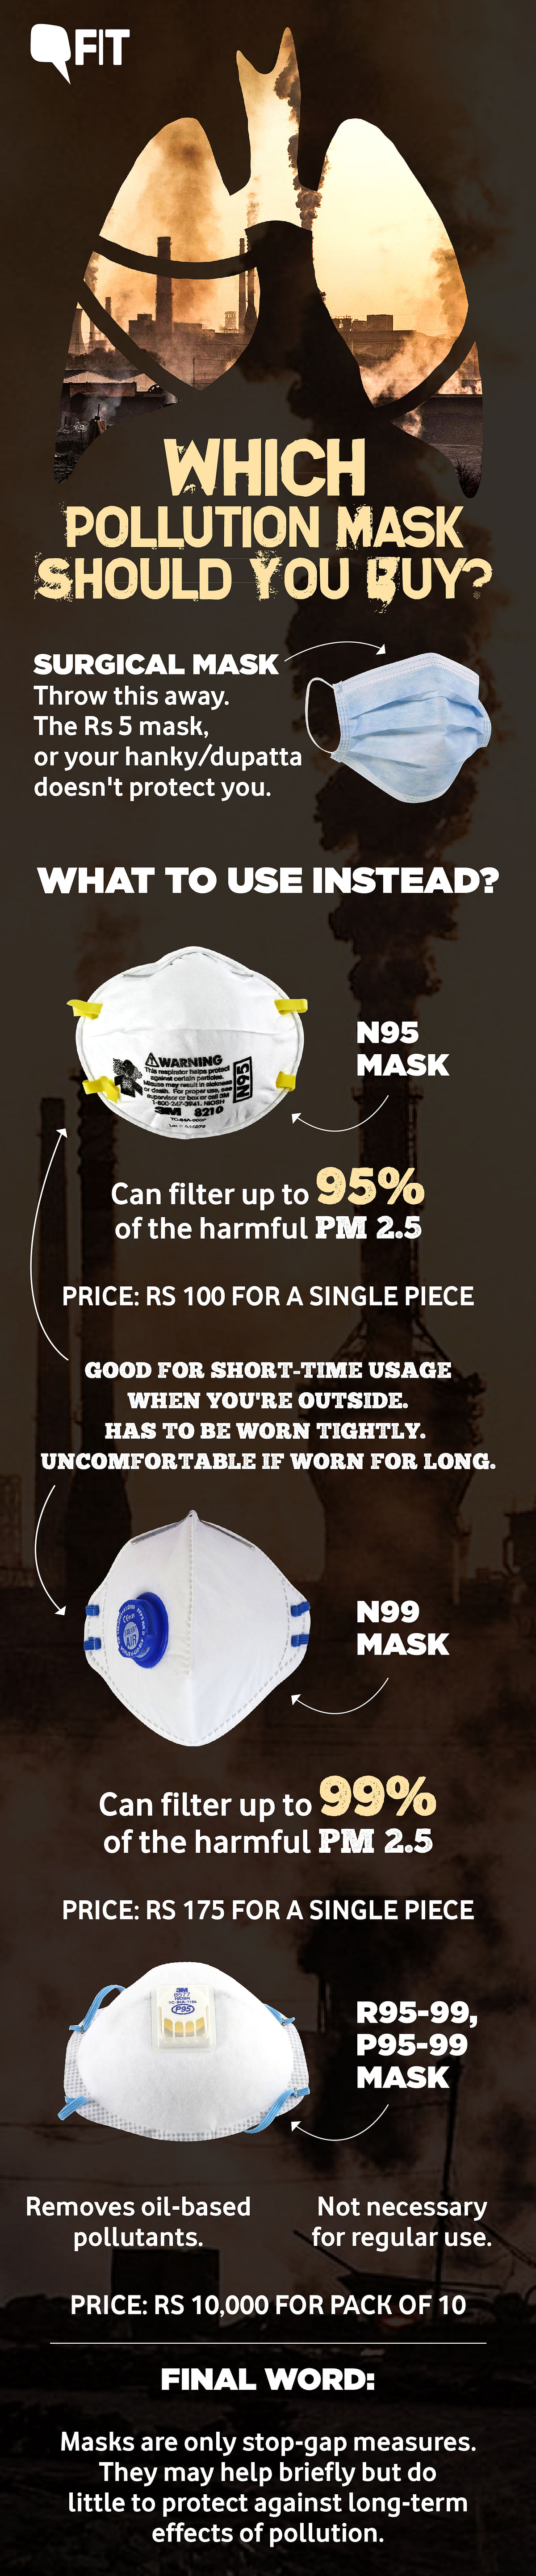 Fighting Air Pollution: What Mask Should You Be Buying?